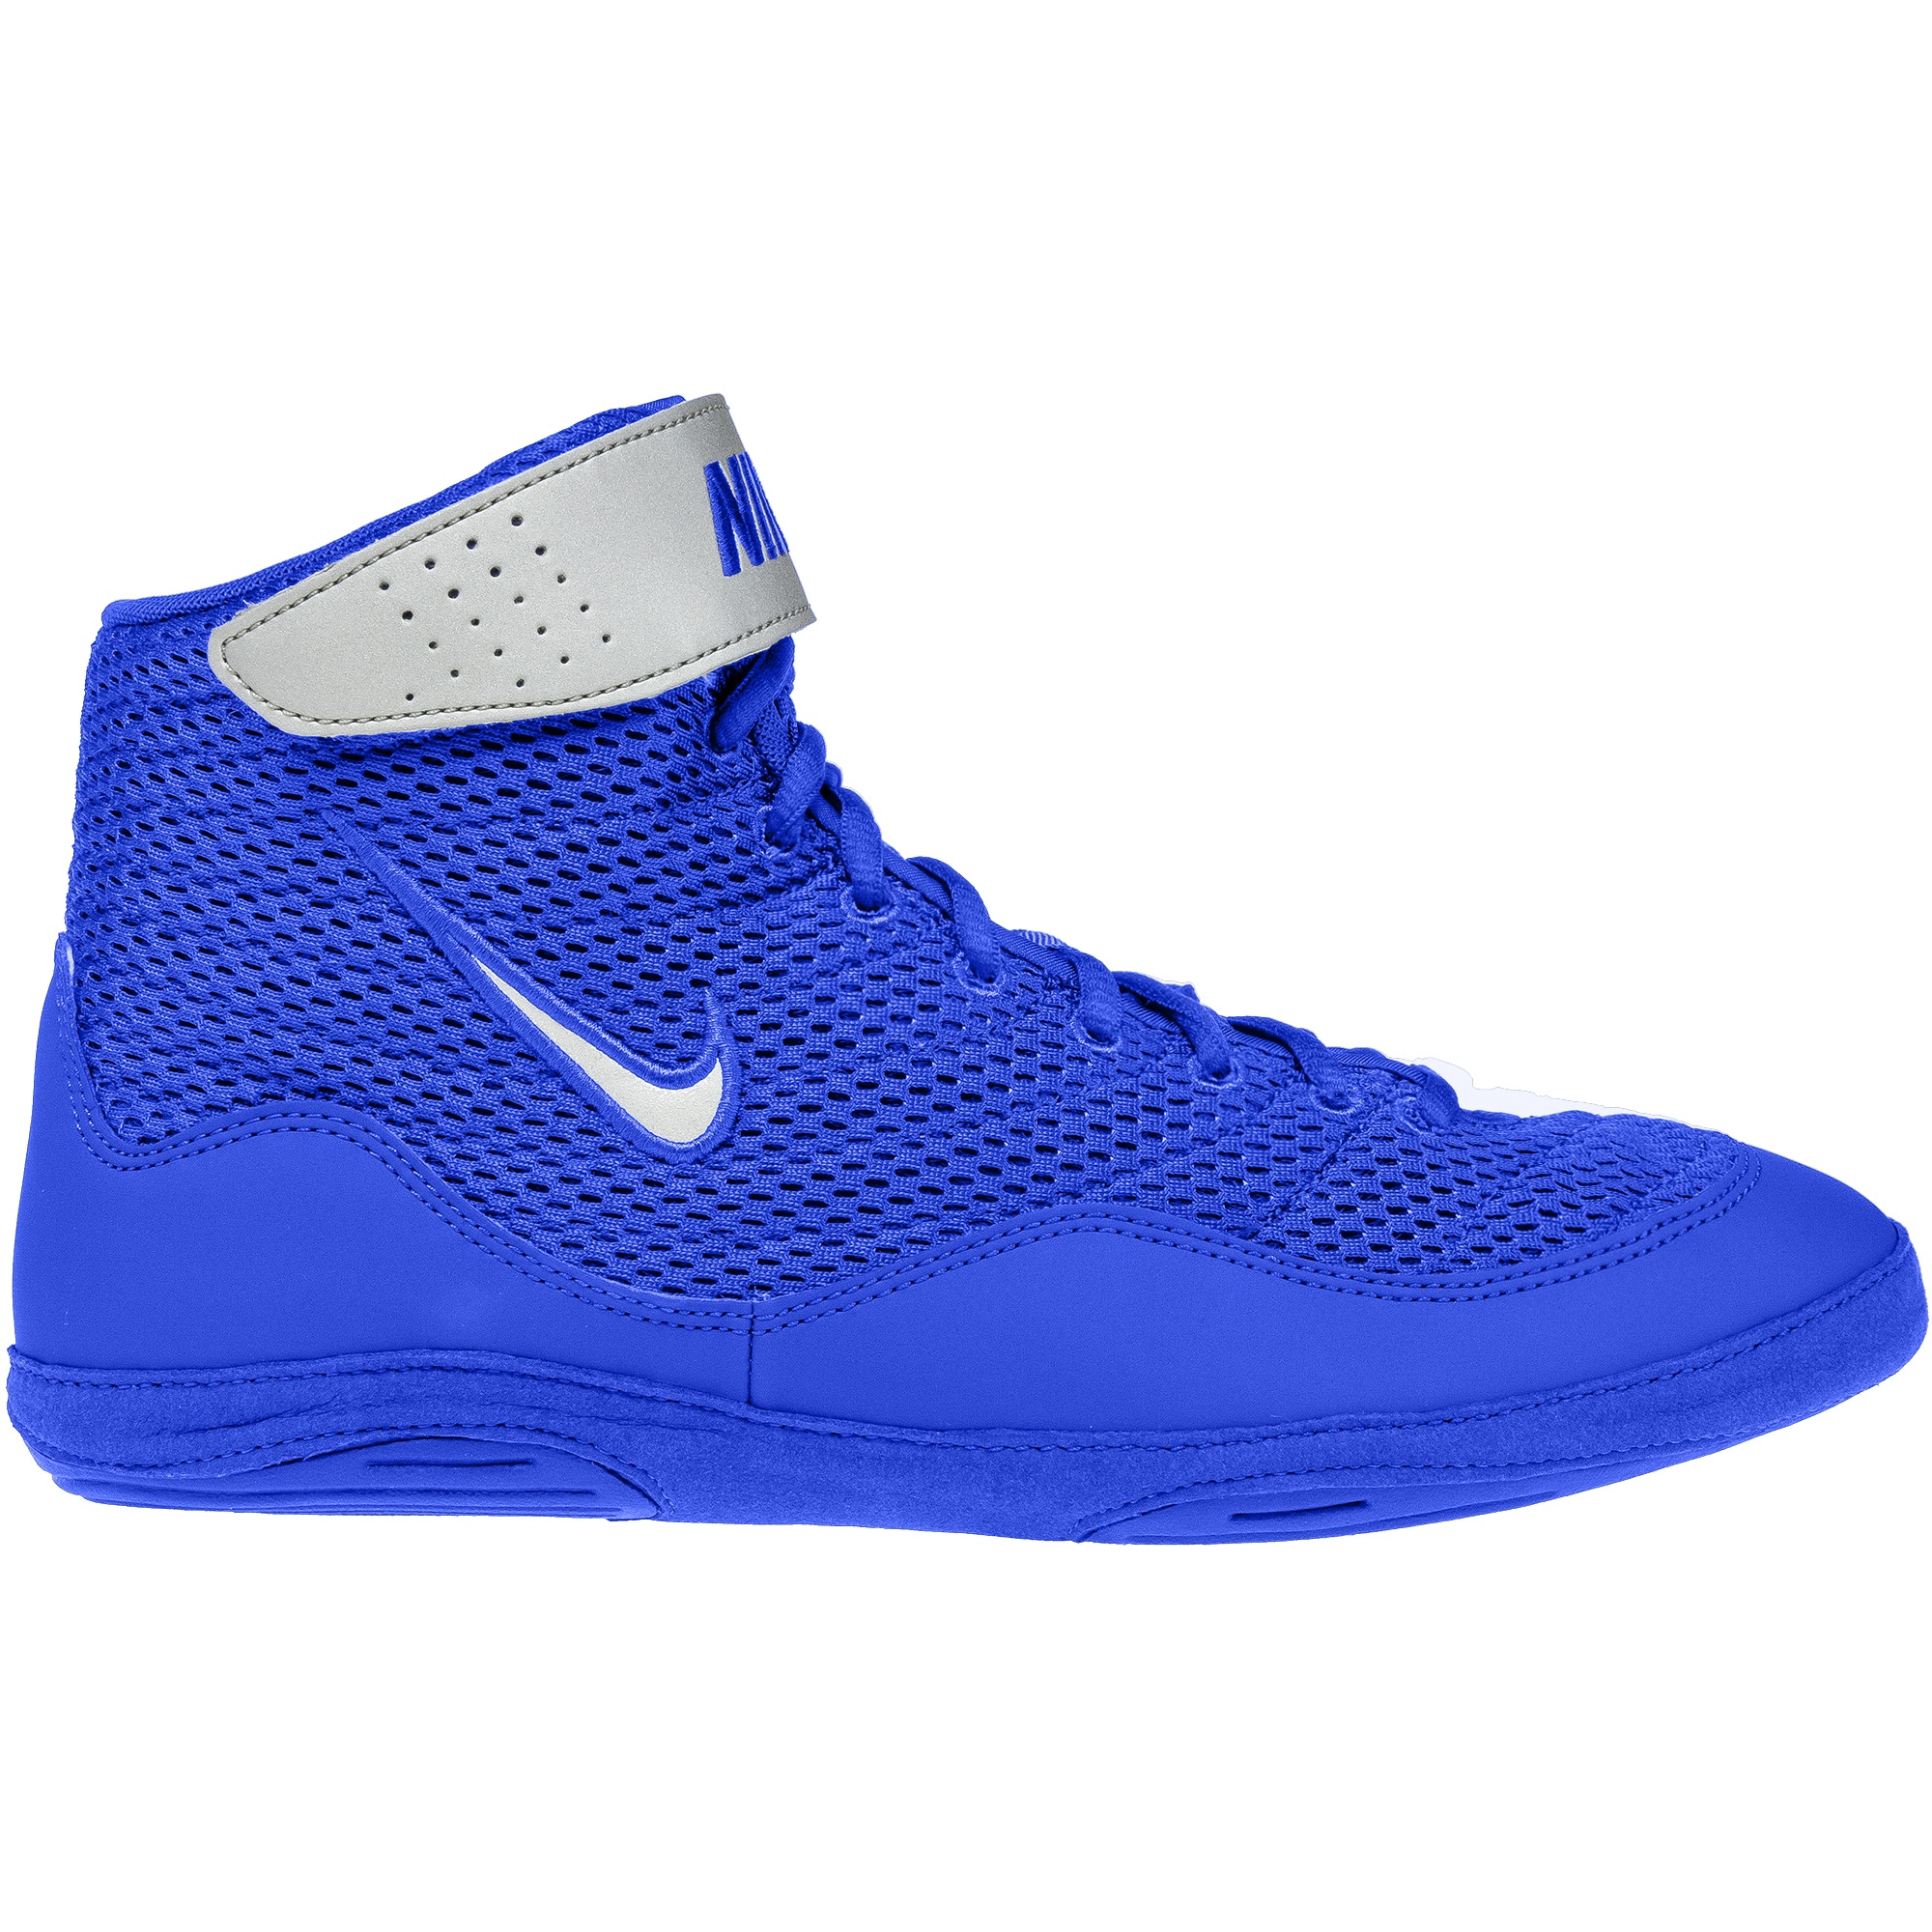 62a4619cbca2 ... Inflict 3 Royal Blue Silver insideNike Inflict 3 Royal Blue Silver front Nike Inflict 3 Royal Blue Silver backNike Inflict 3 Royal Blue Silver sole